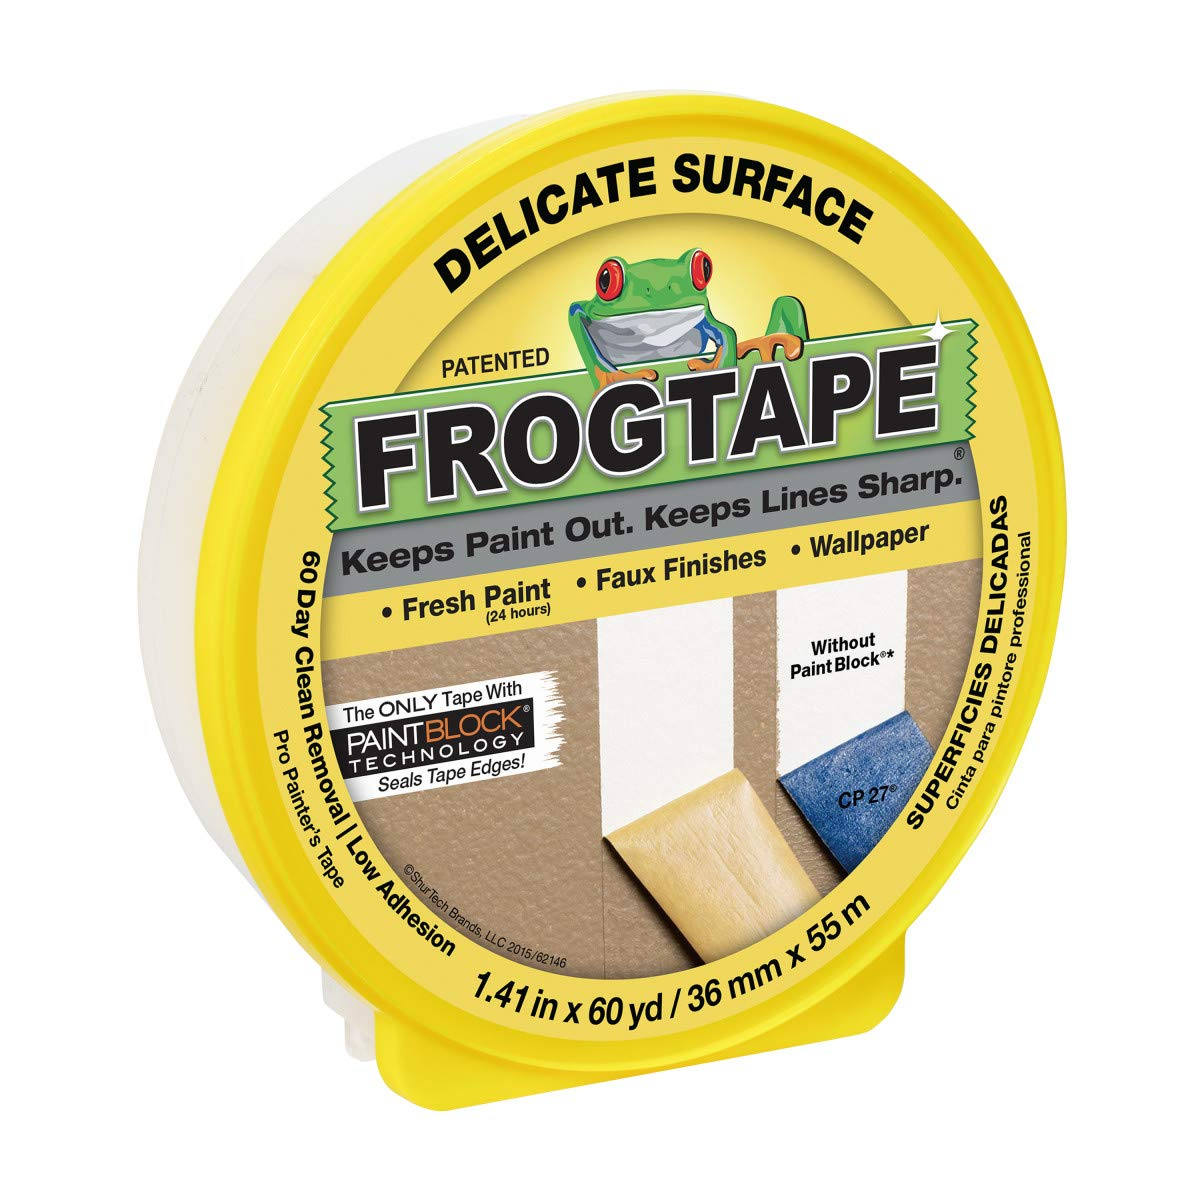 FrogTape Delicate Surface Painting Tape, 1.41 in. x 60 yd. Roll, Yellow (280221)